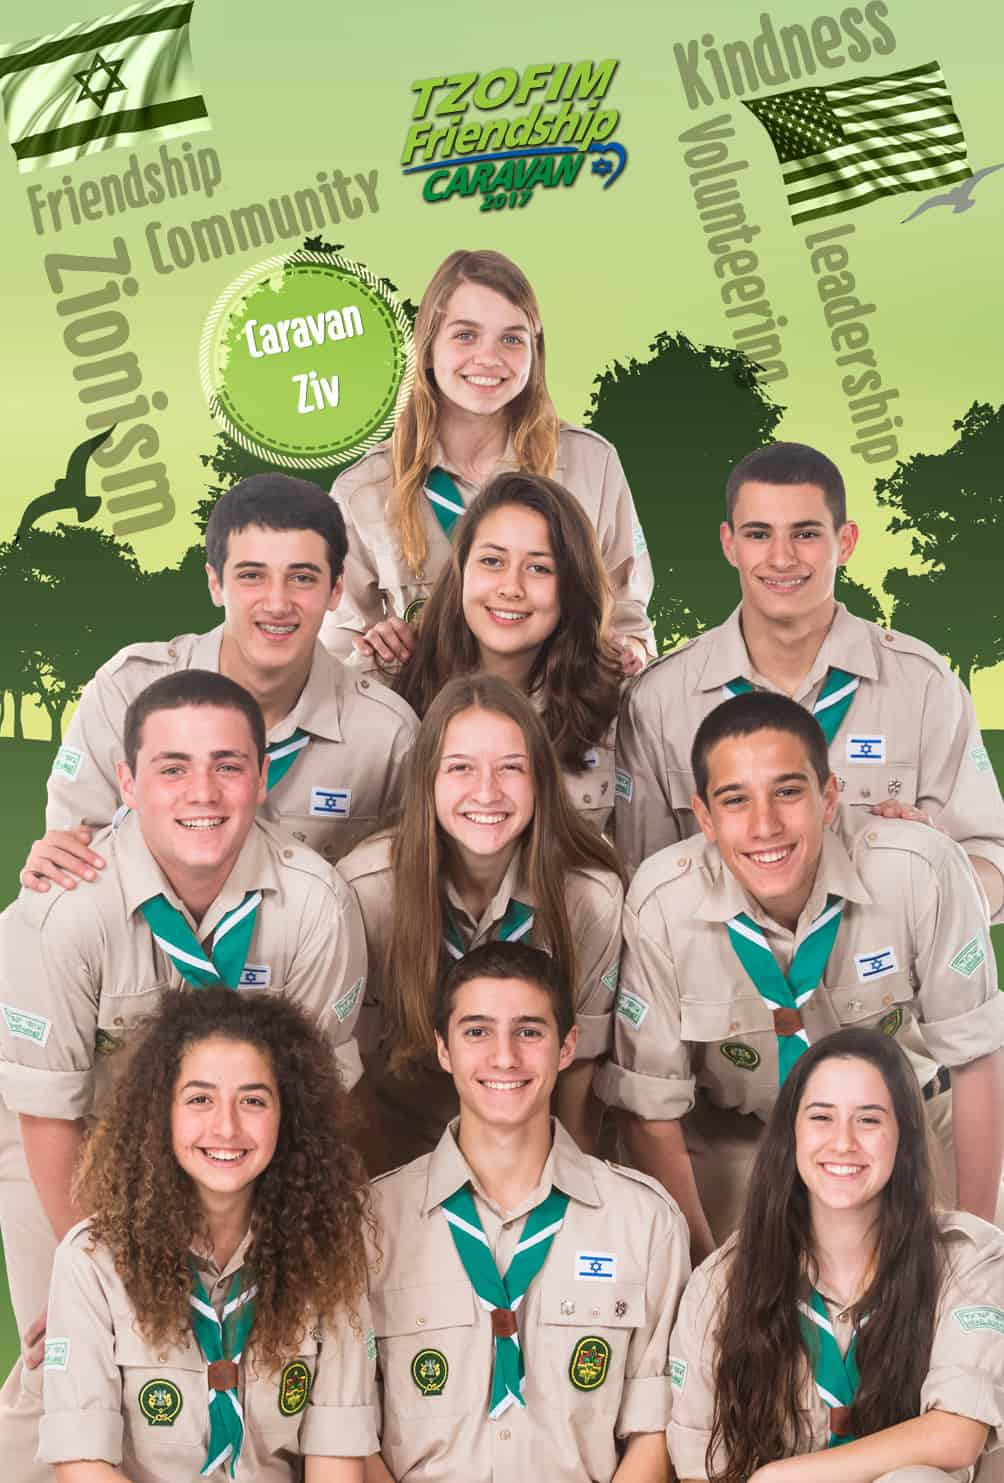 meet-the-israeli-scouts-karin-and-itamar